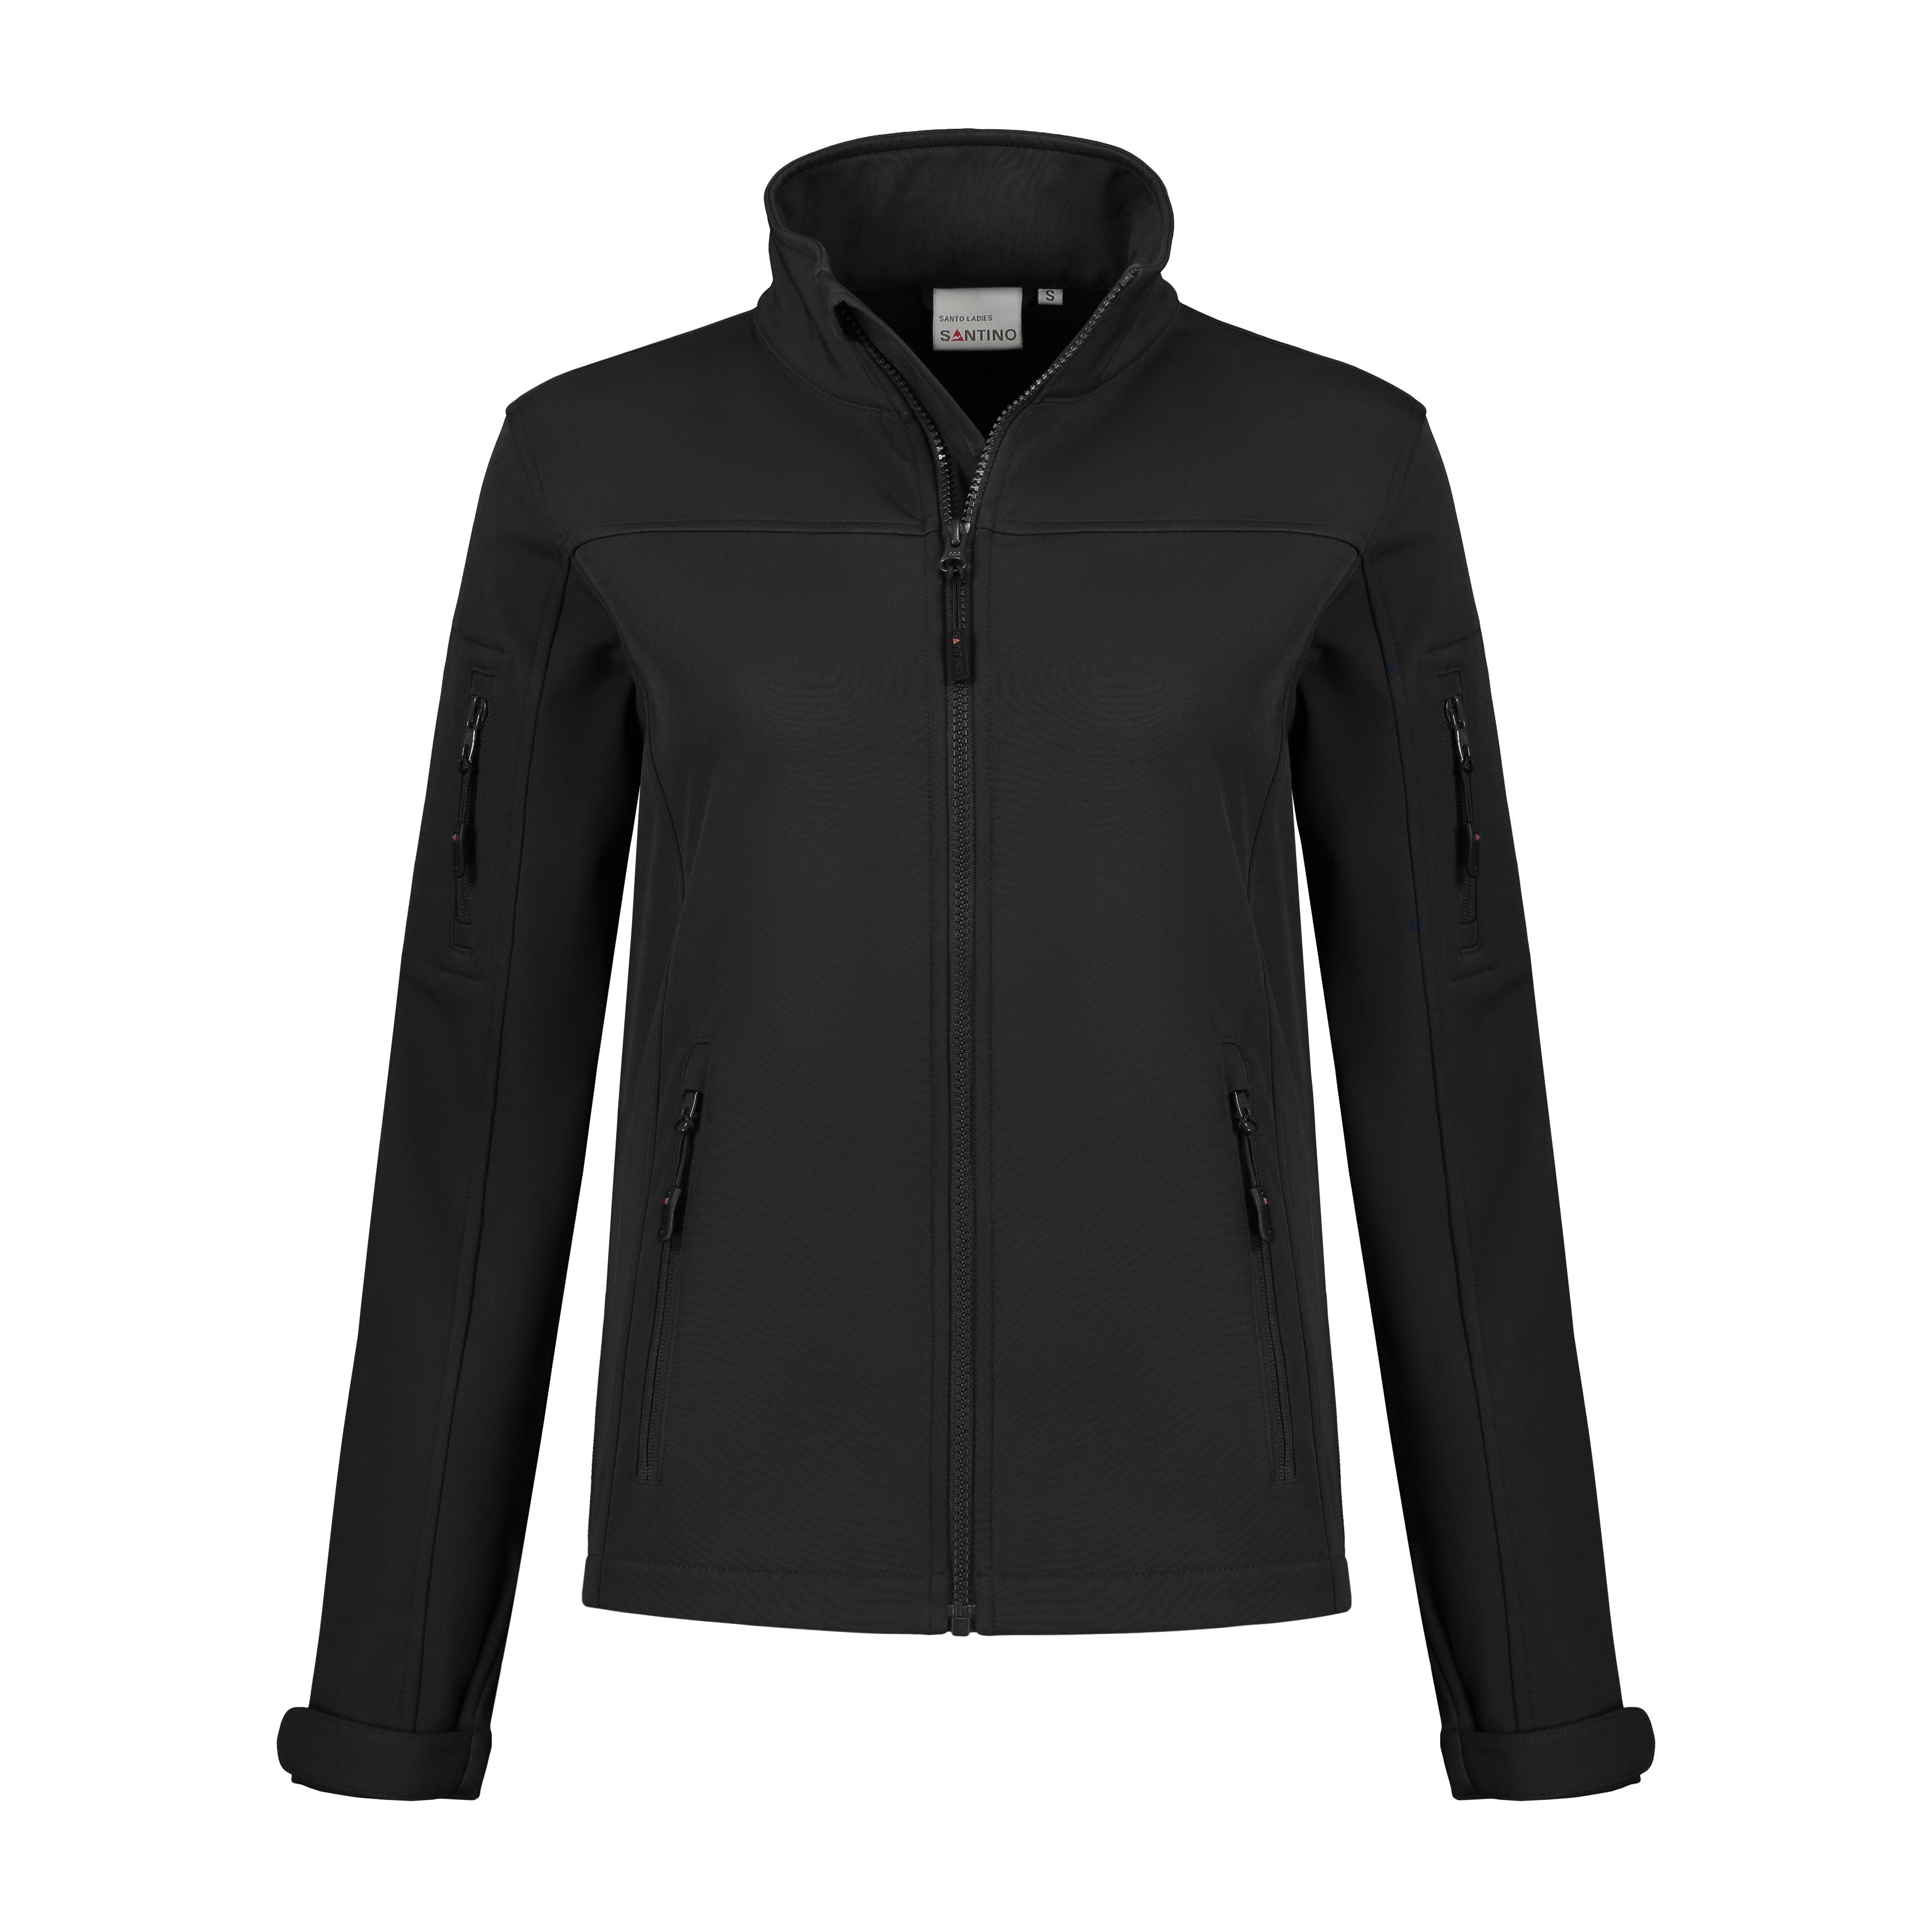 SANTINO Softshell Jacket Santo Ladies Black L